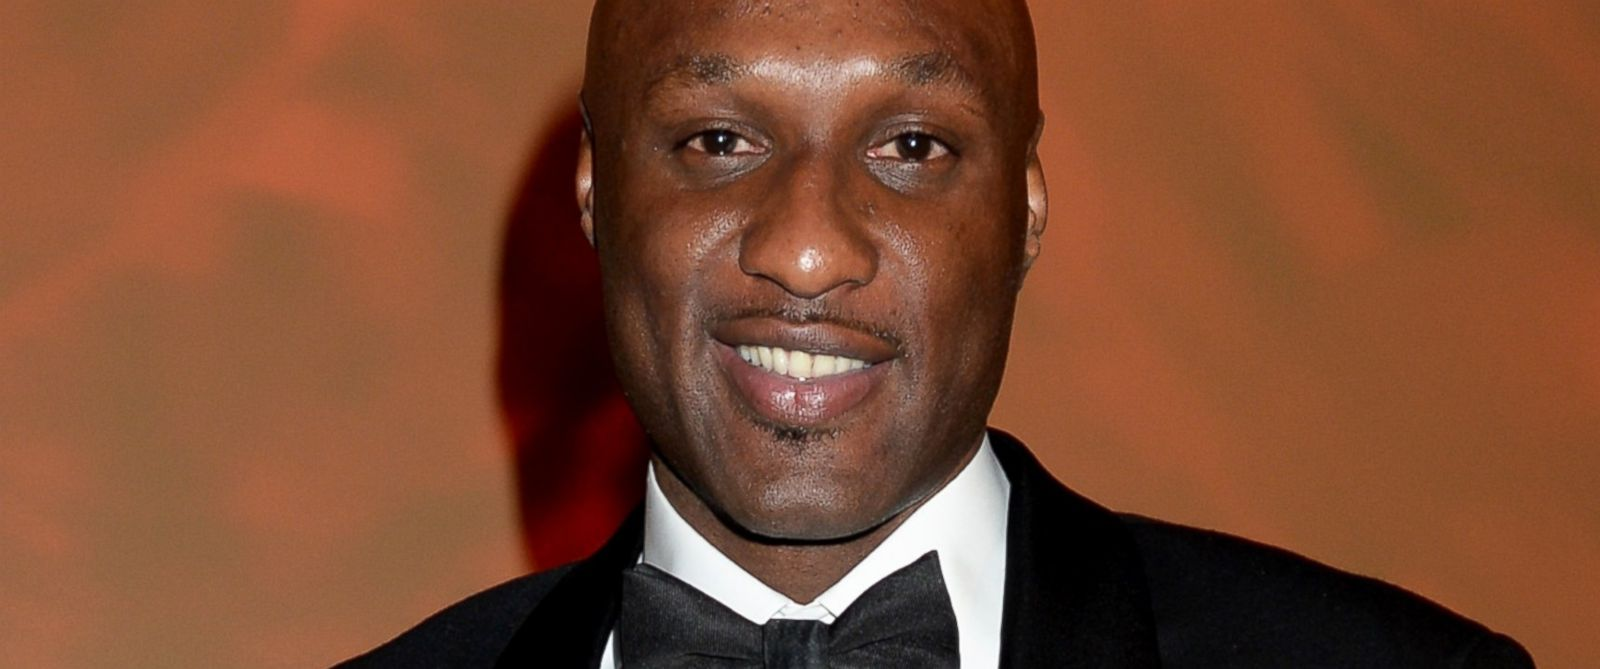 PHOTO: Lamar Odom attends HBOs Official Golden Globe Awards After Party at The Beverly Hilton Hotel, Jan. 12, 2014, in Beverly Hills, Calif.